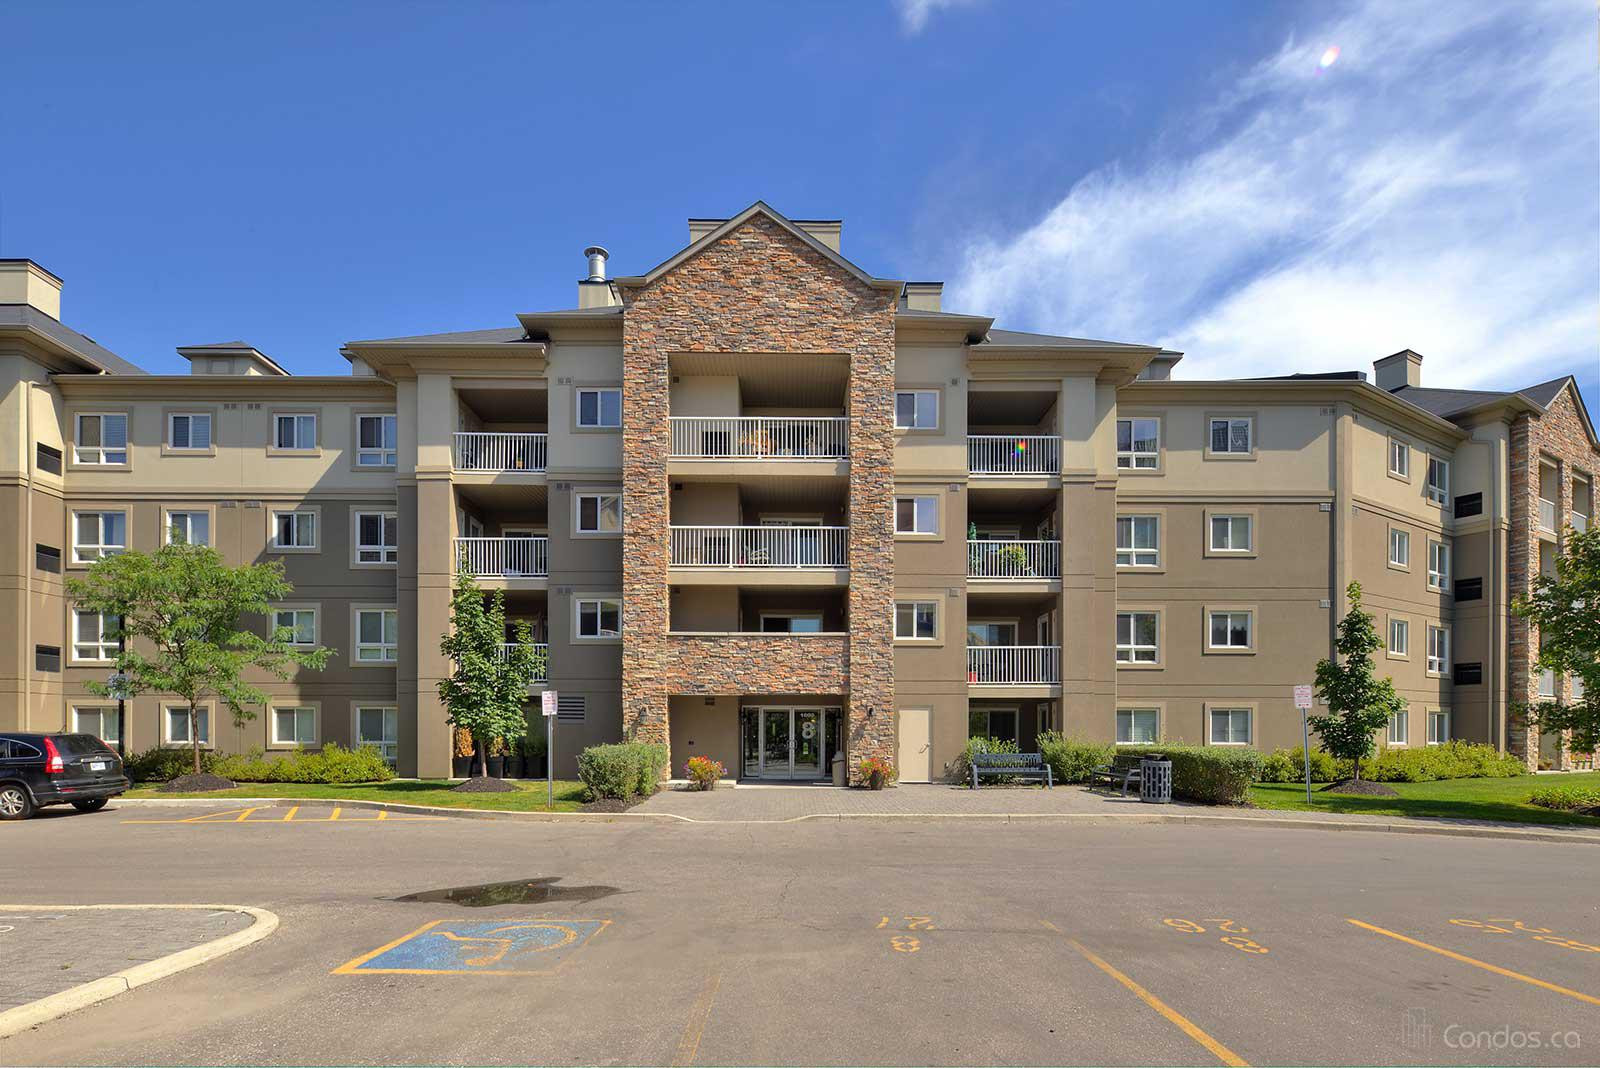 Dayspring Circle Condominium at 8 Dayspring Cir, Brampton 0